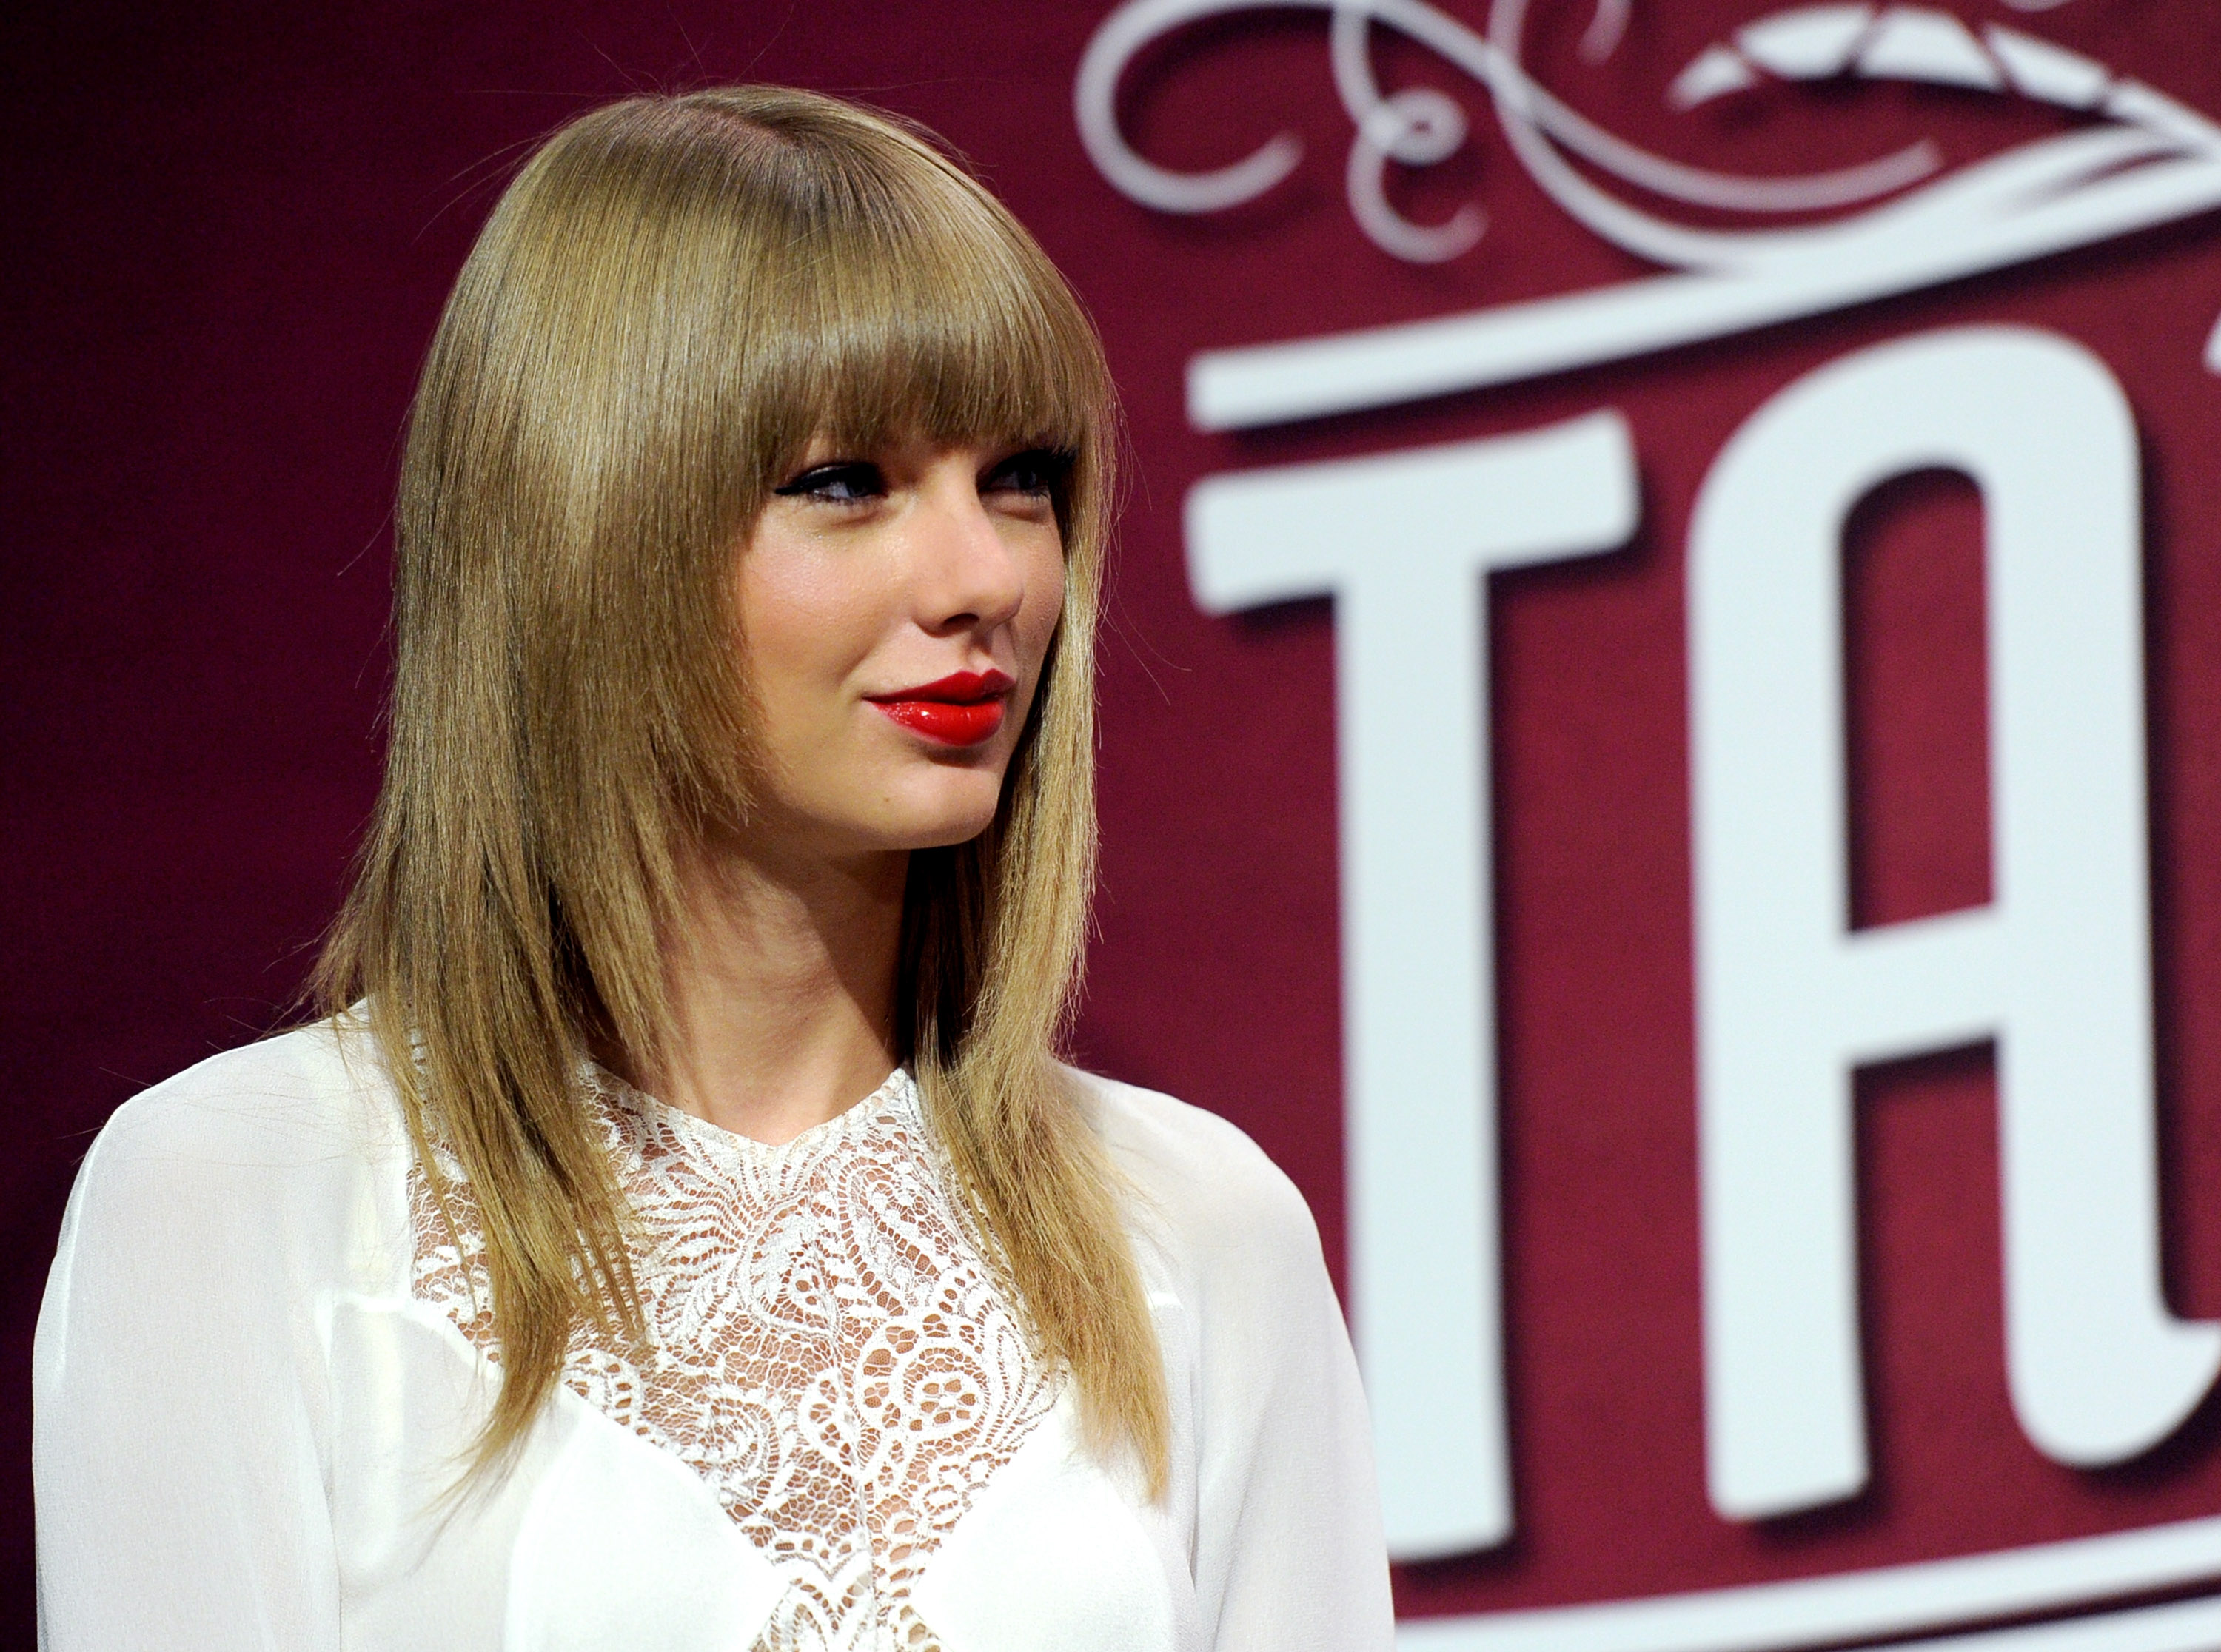 Taylor Swift Cancels Thailand Concert After Military Coup And Unrest Time